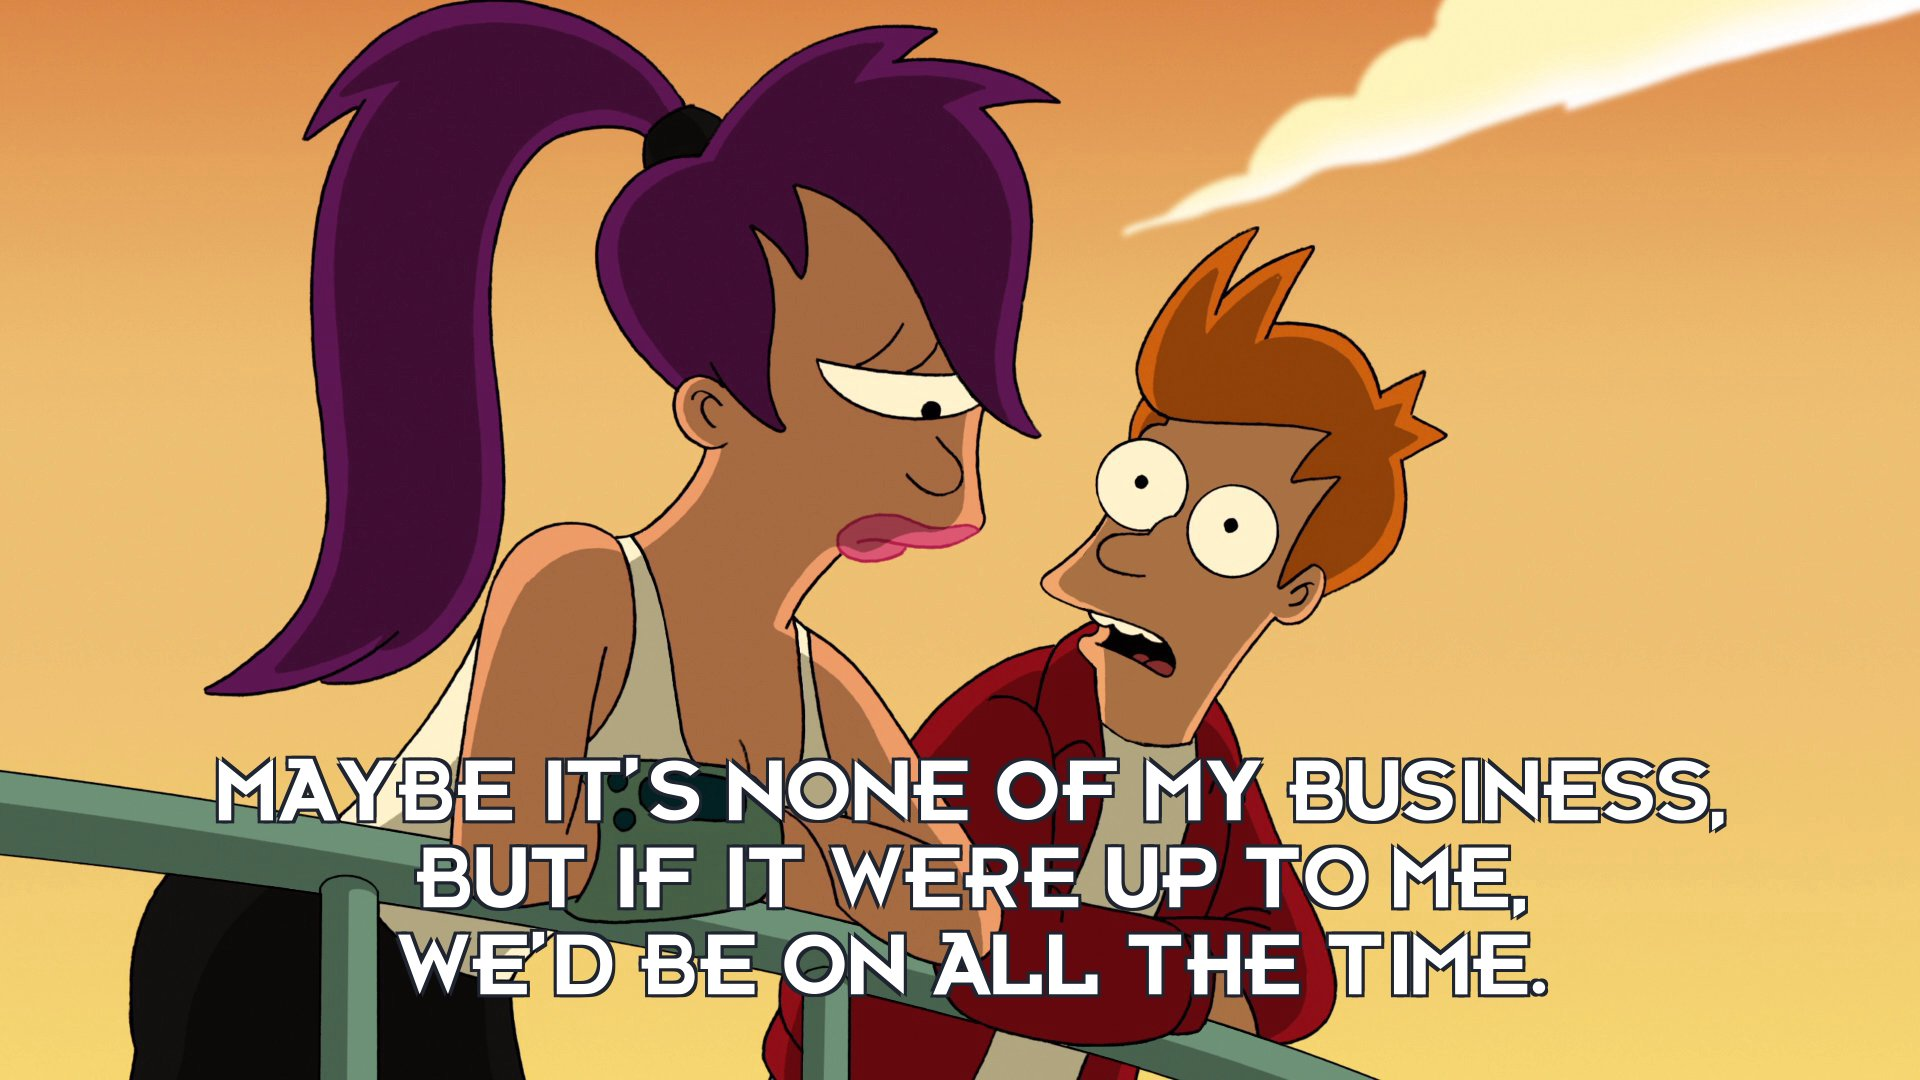 Philip J Fry: Maybe it's none of my business, but if it were up to me, we'd be on all the time.